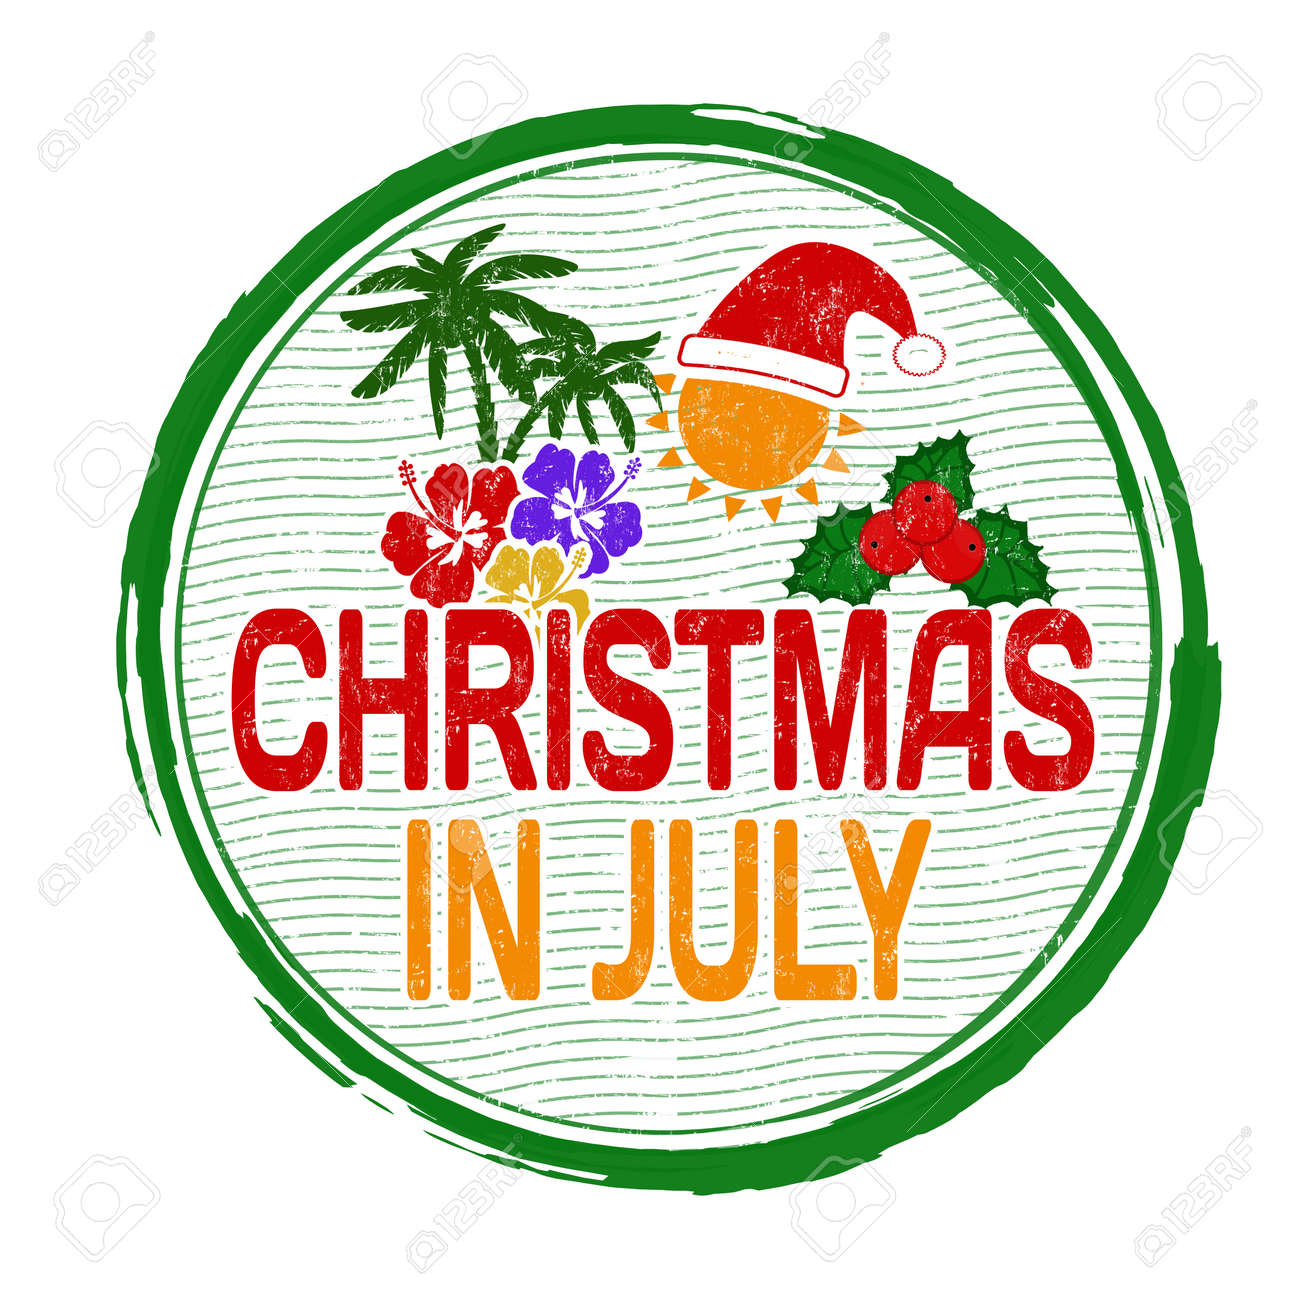 Christmas In July Images Free.Christmas In July Grunge Rubber Stamp On White Vector Illustration